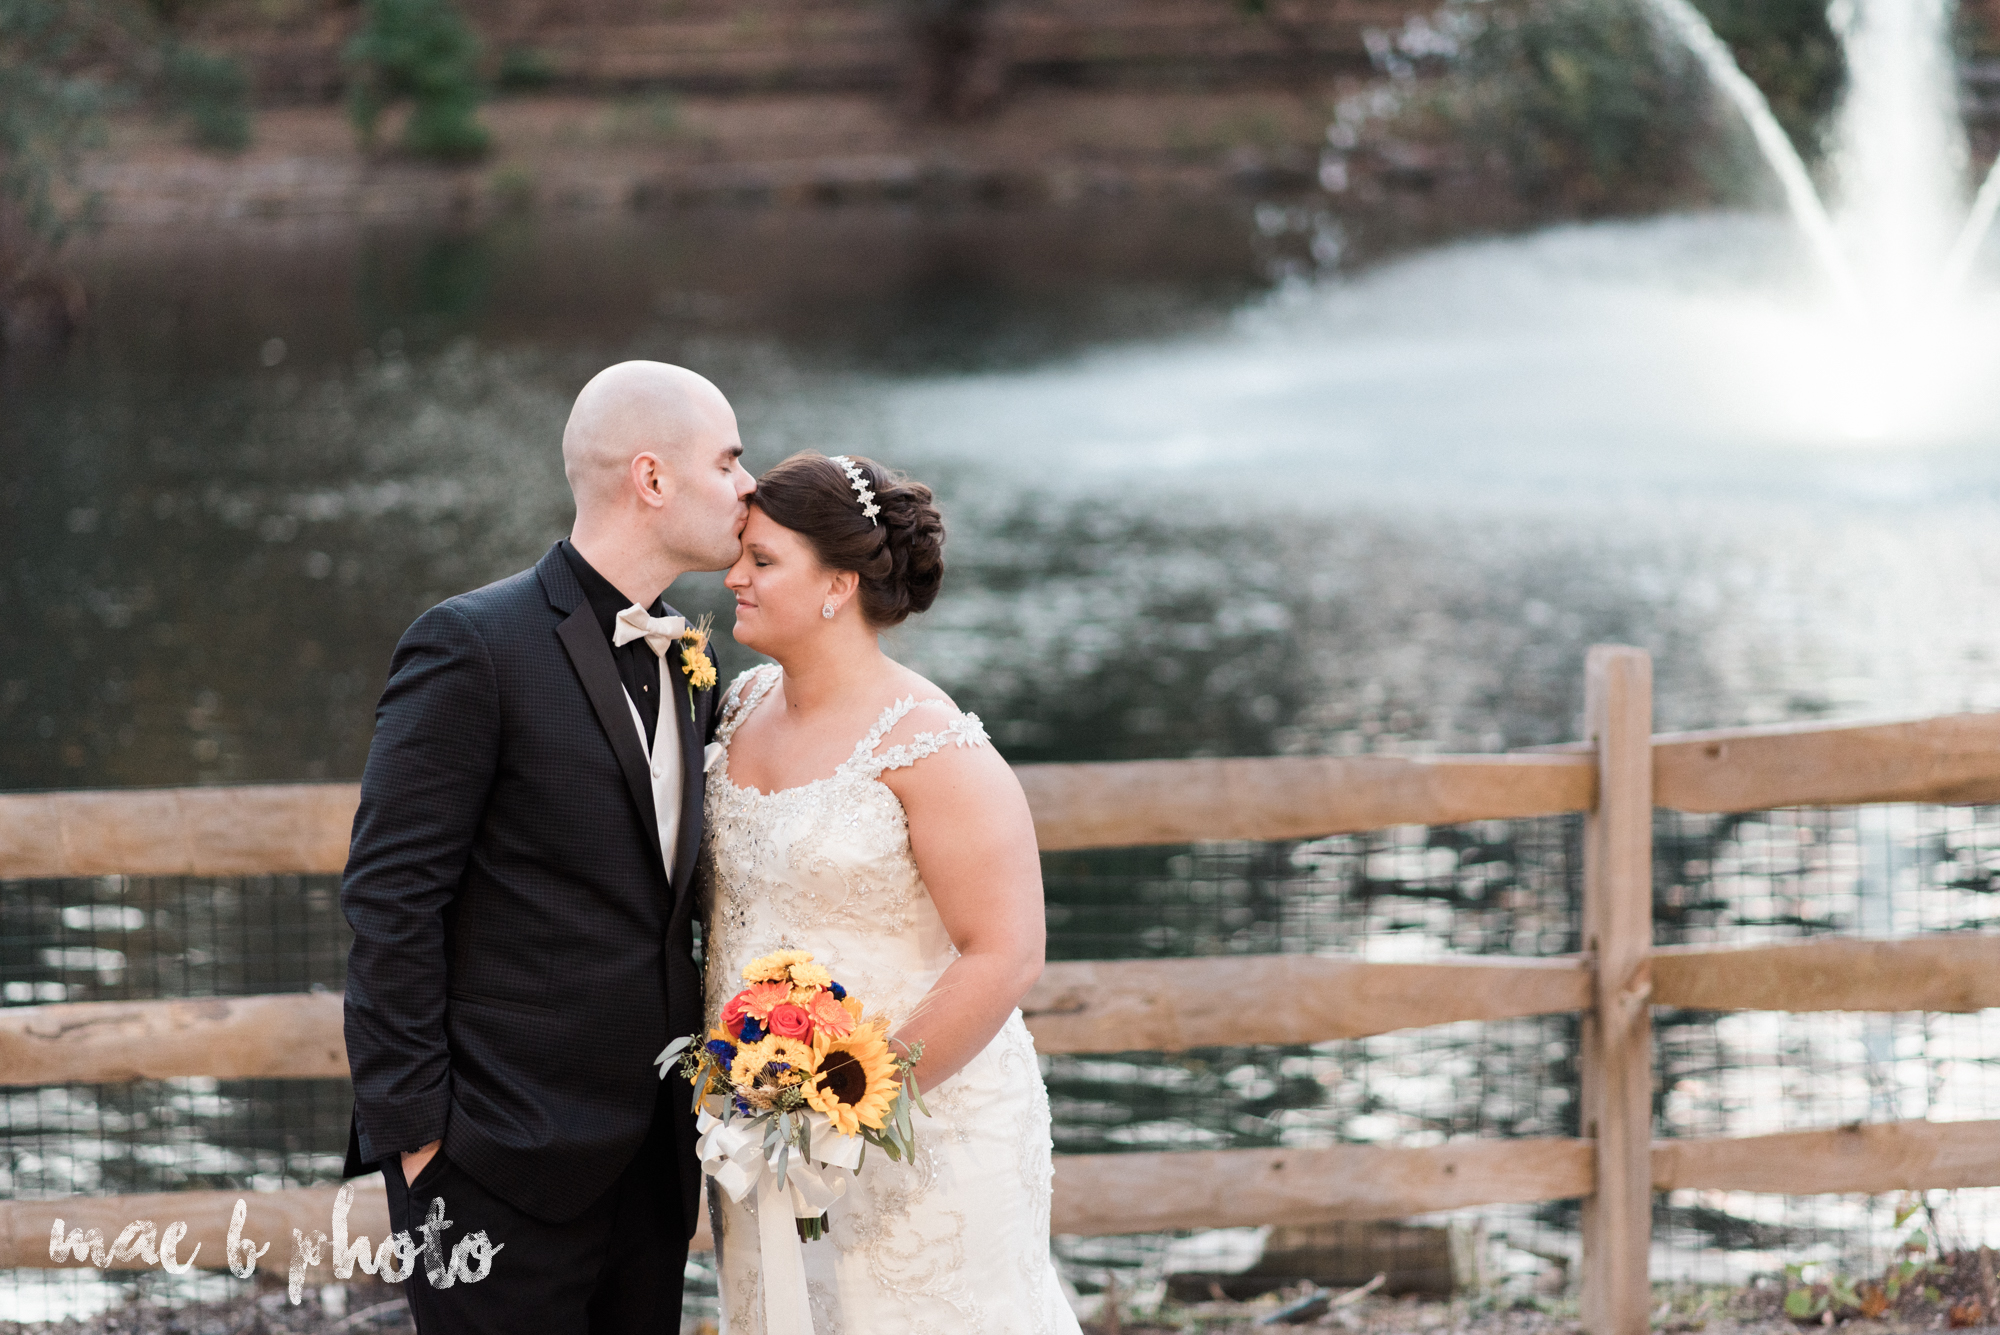 kaylynn & matt's fall zoo wedding at the cleveland metroparks zoo in cleveland ohio photographed by mae b photo-52.jpg